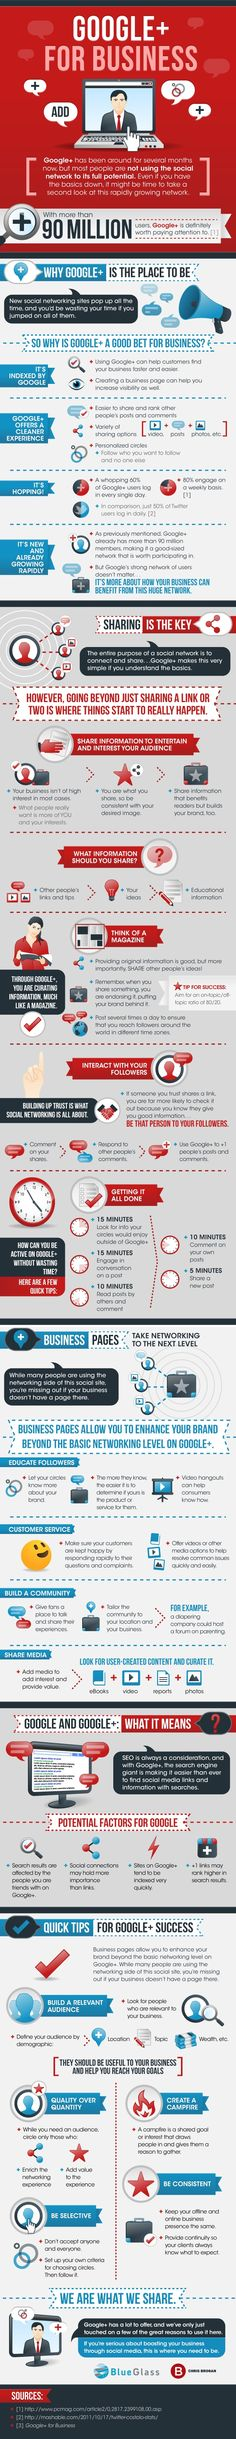 An infographic from Chris Brogan showing why and how to use Google+ for Business